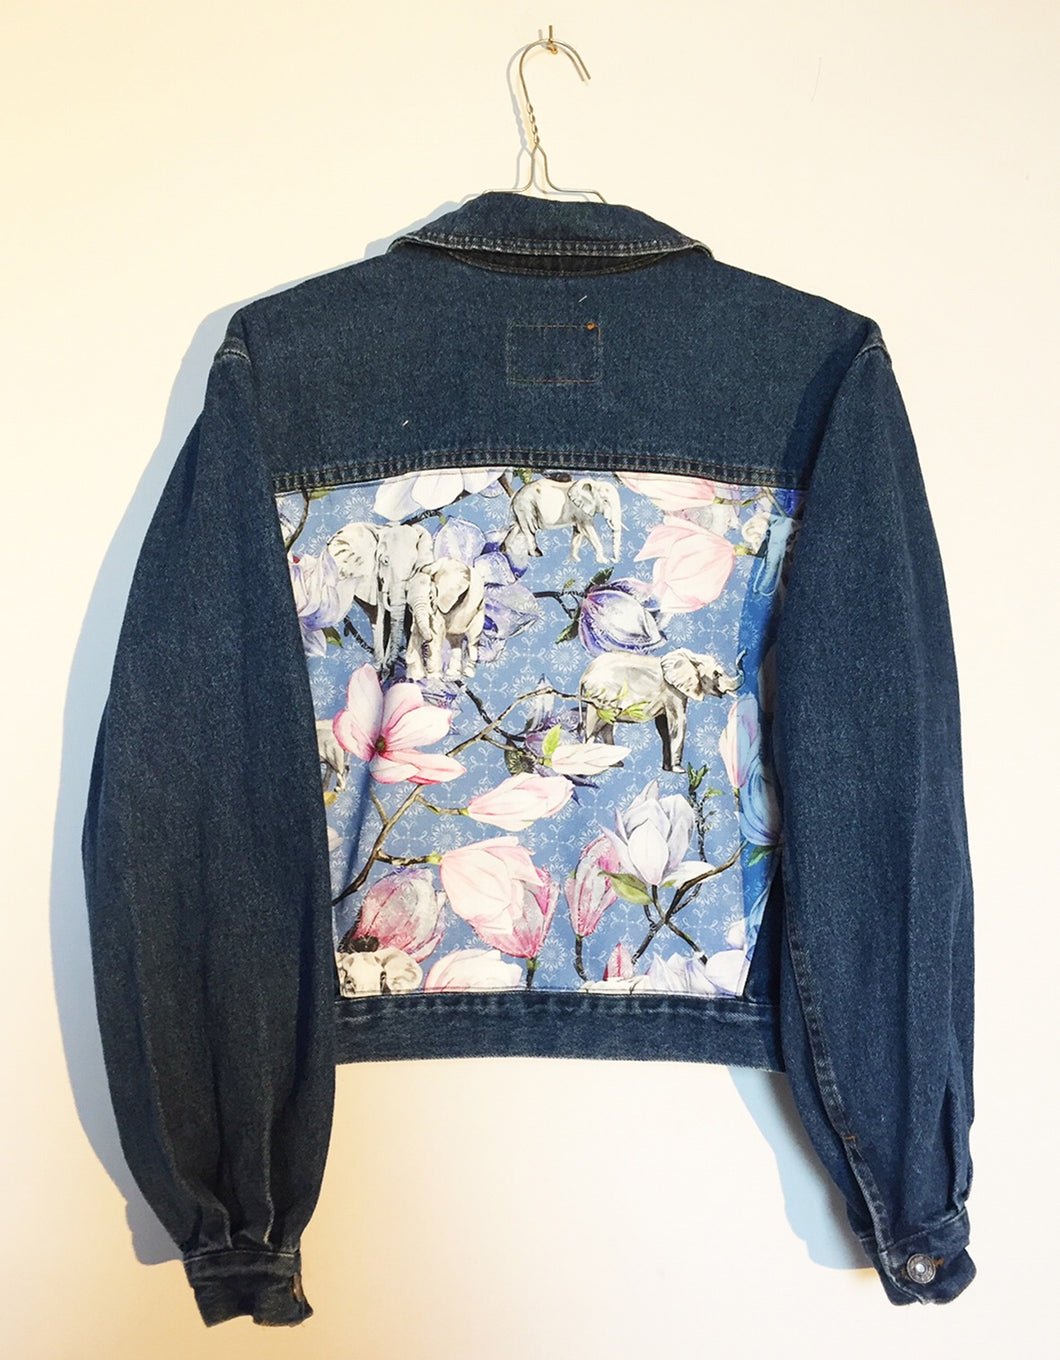 'Gold' denim jacket, blue elephant design